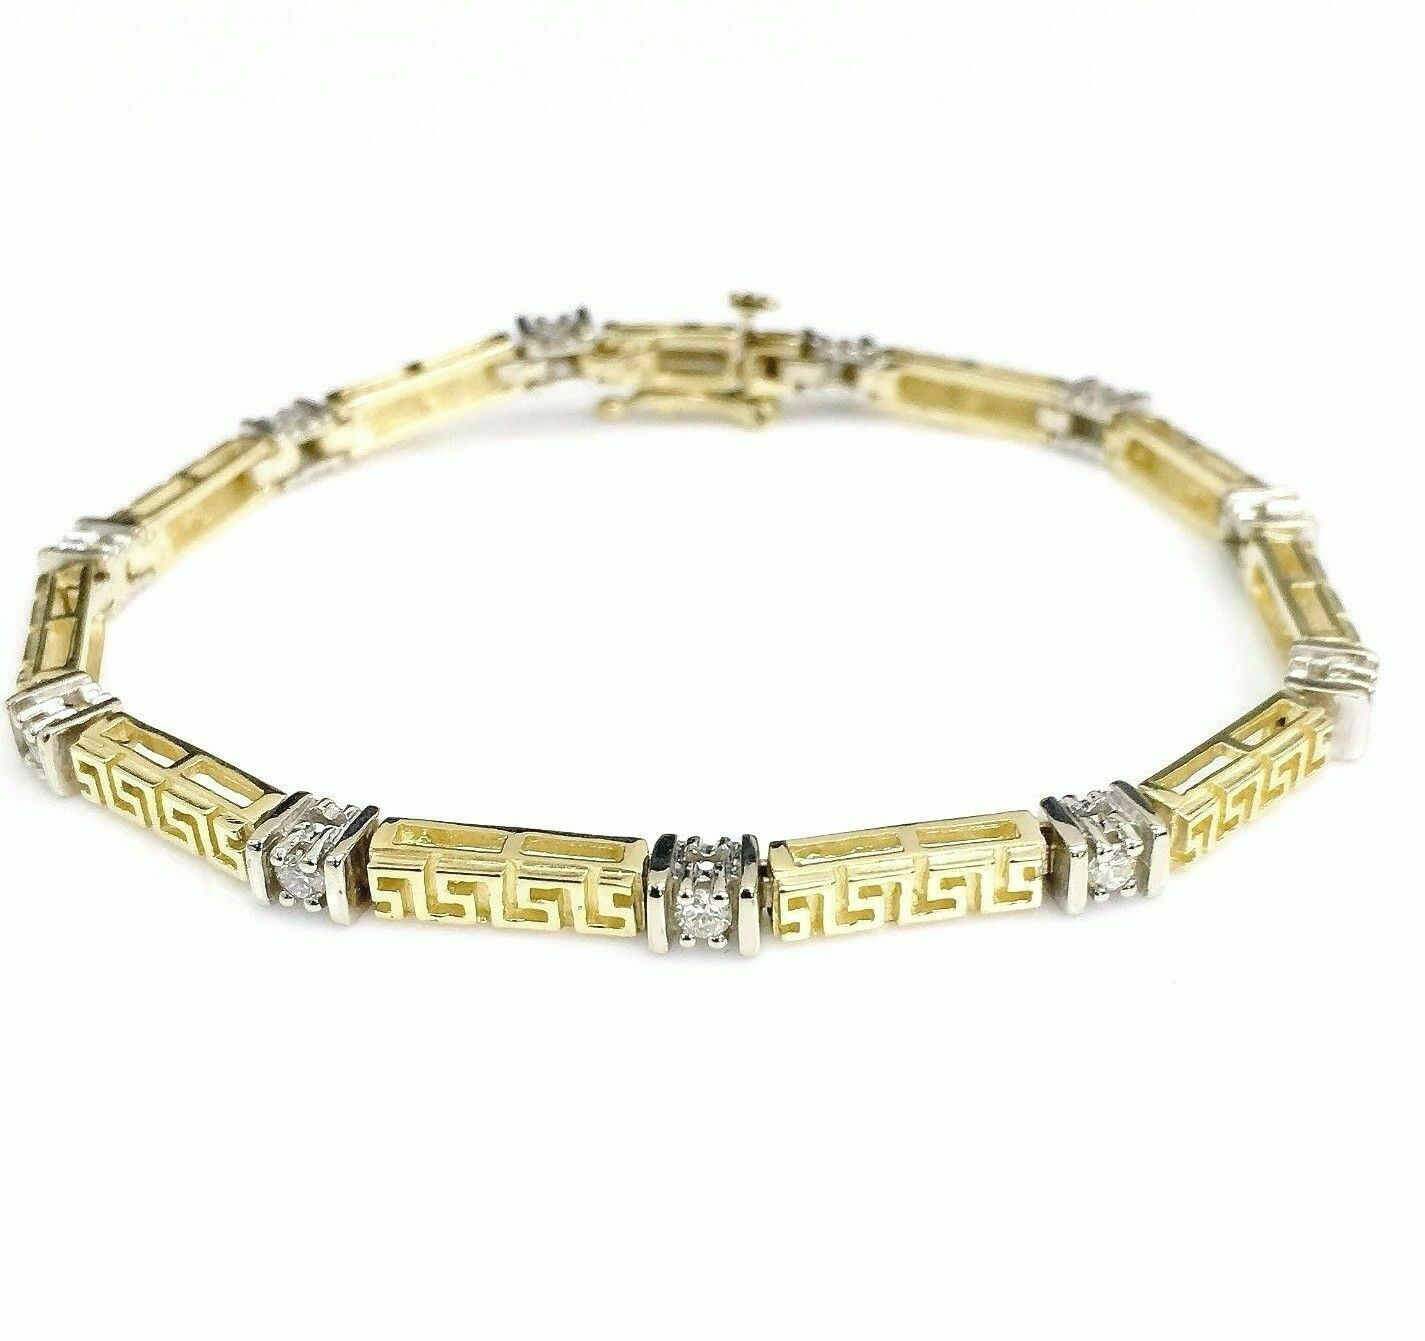 0.60Carat t.w. Diamond Tennis Bracelet 14 Karat 2Tone Gold Brand New Made in USA